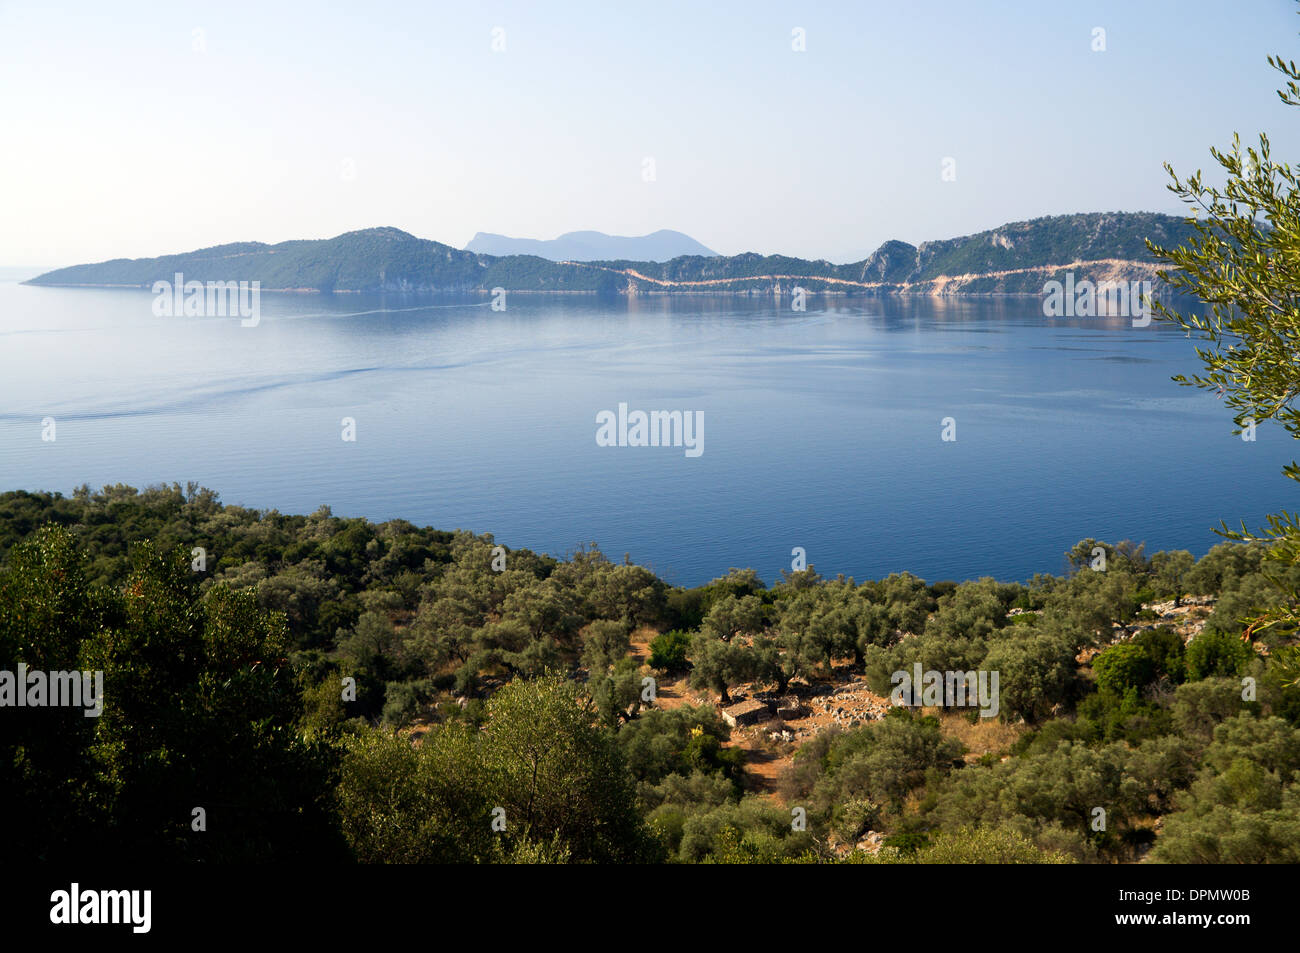 View of the Tail of Meganisi Island, Lefkas, Ionian Islands, Greece. - Stock Image